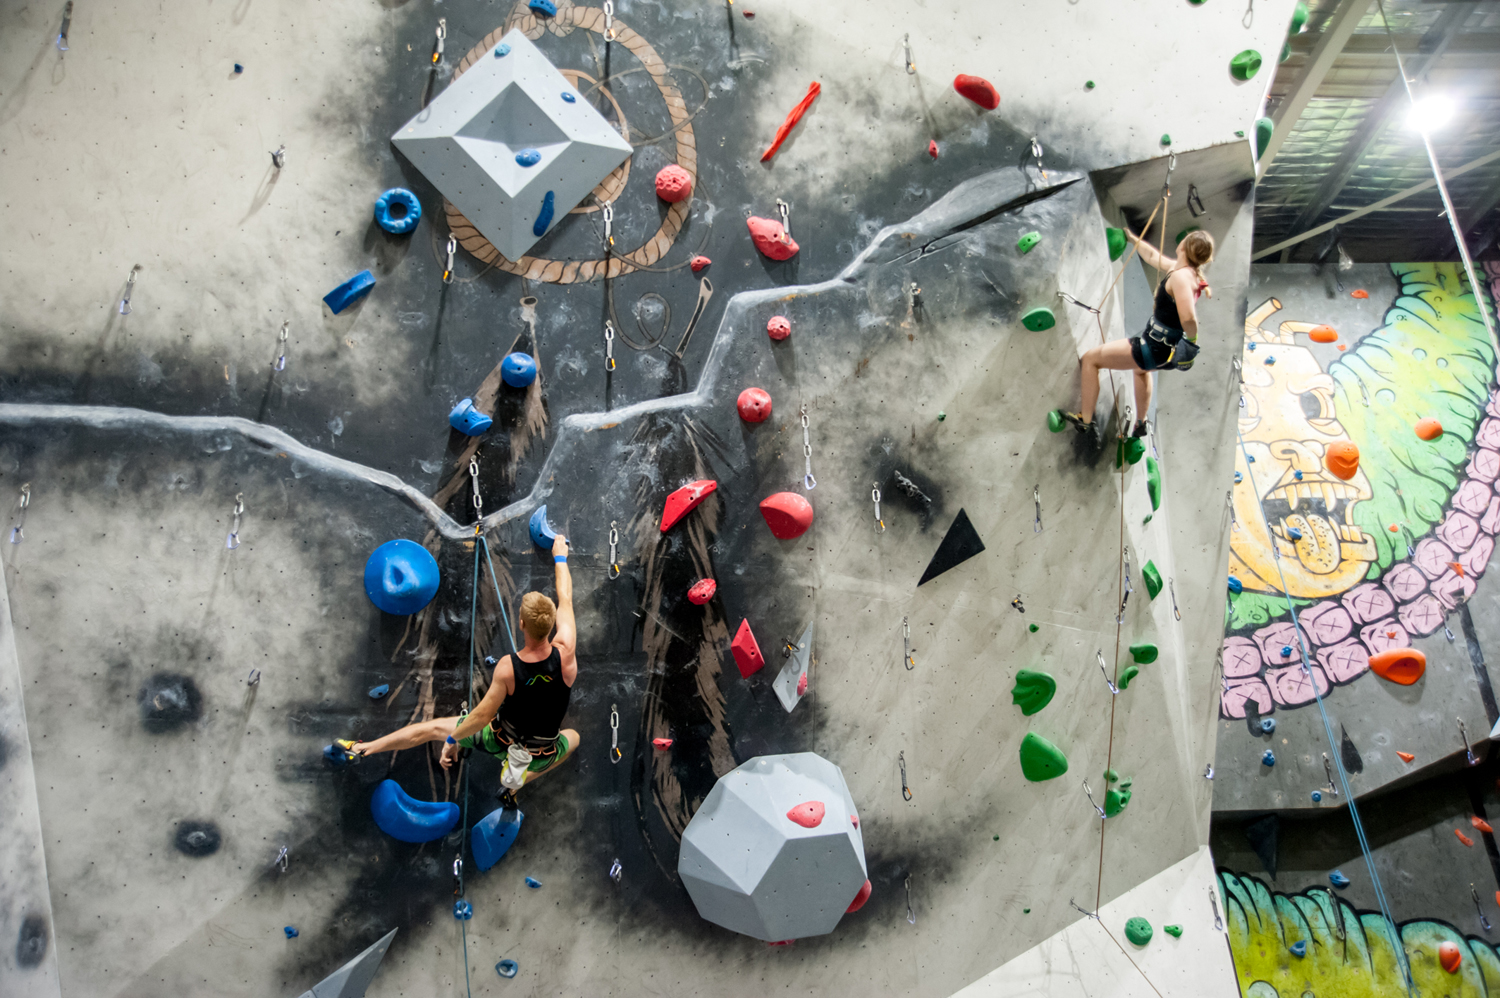 Climbing Rocks Professional Climbing Photography Competition Indoor Climbing (33)